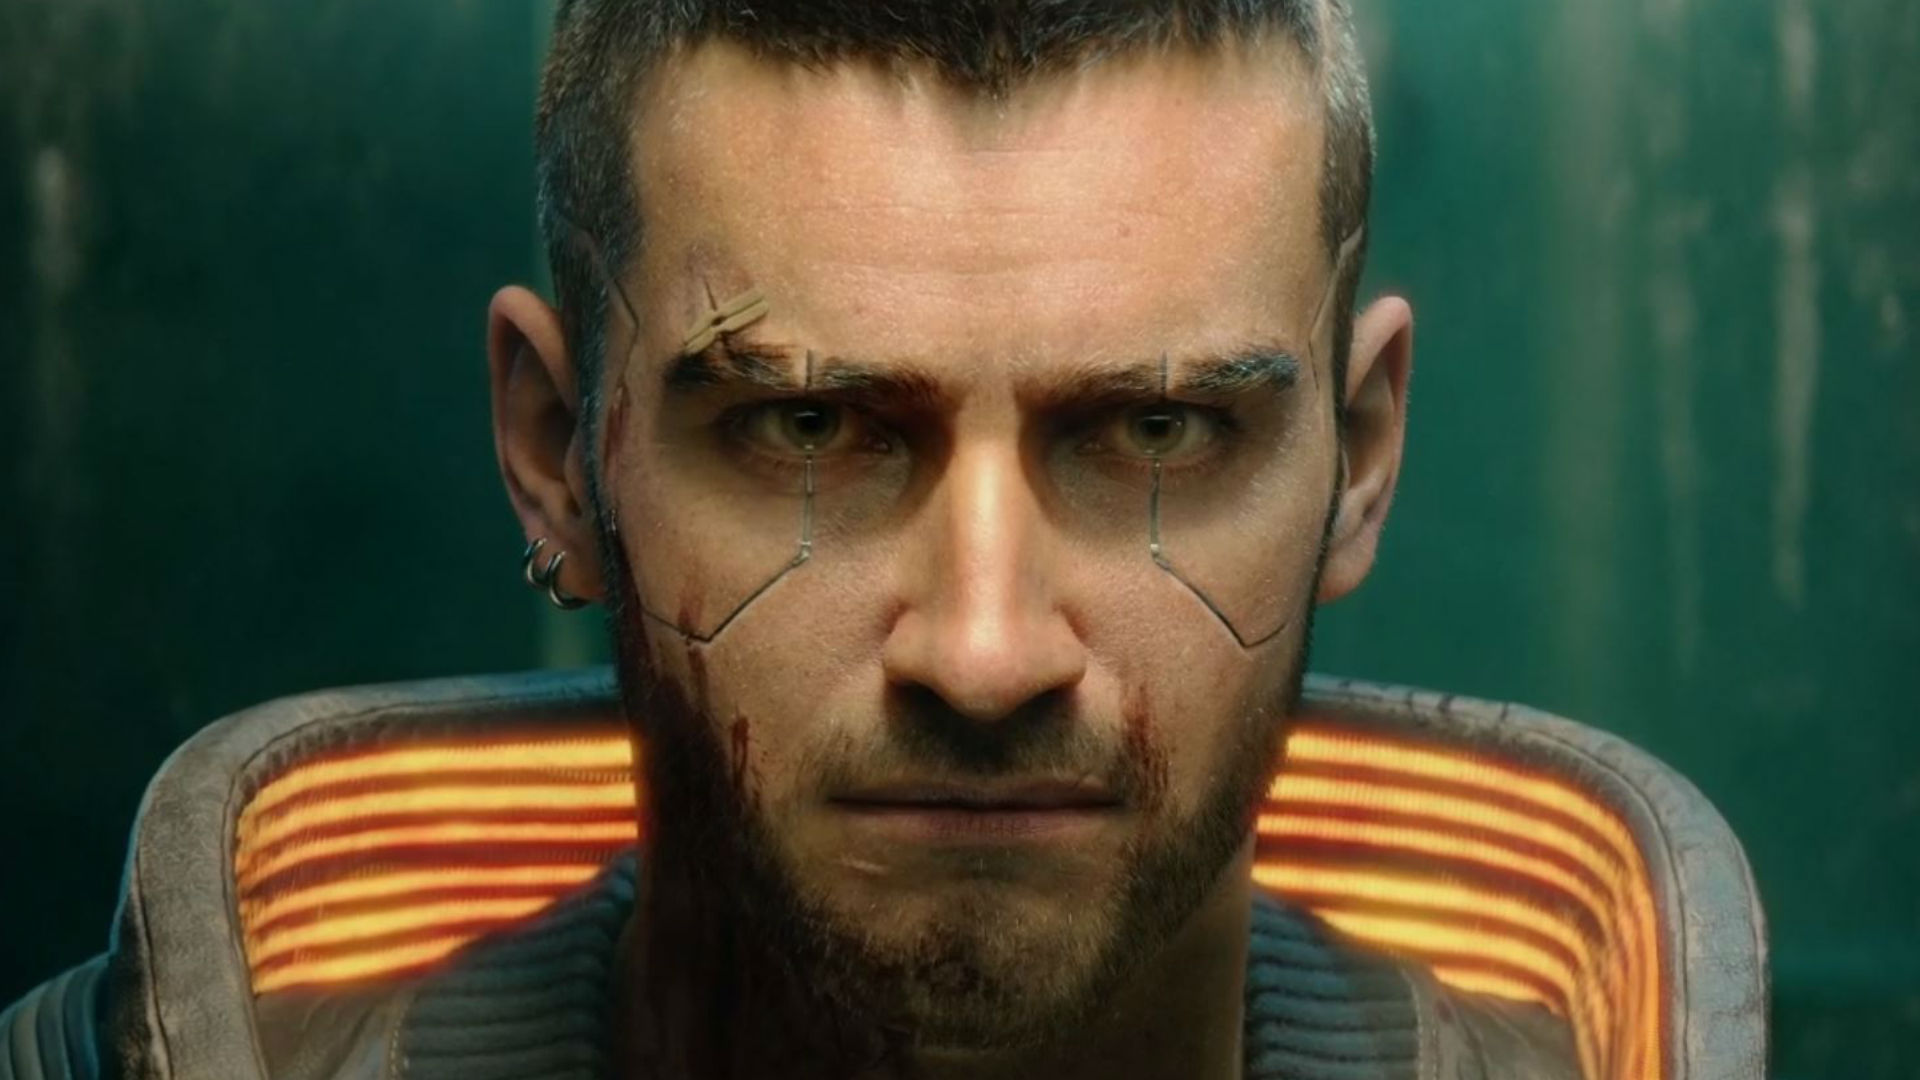 Cyberpunk 2077 Is Already The Bestselling Game On Steam Pcgamesn